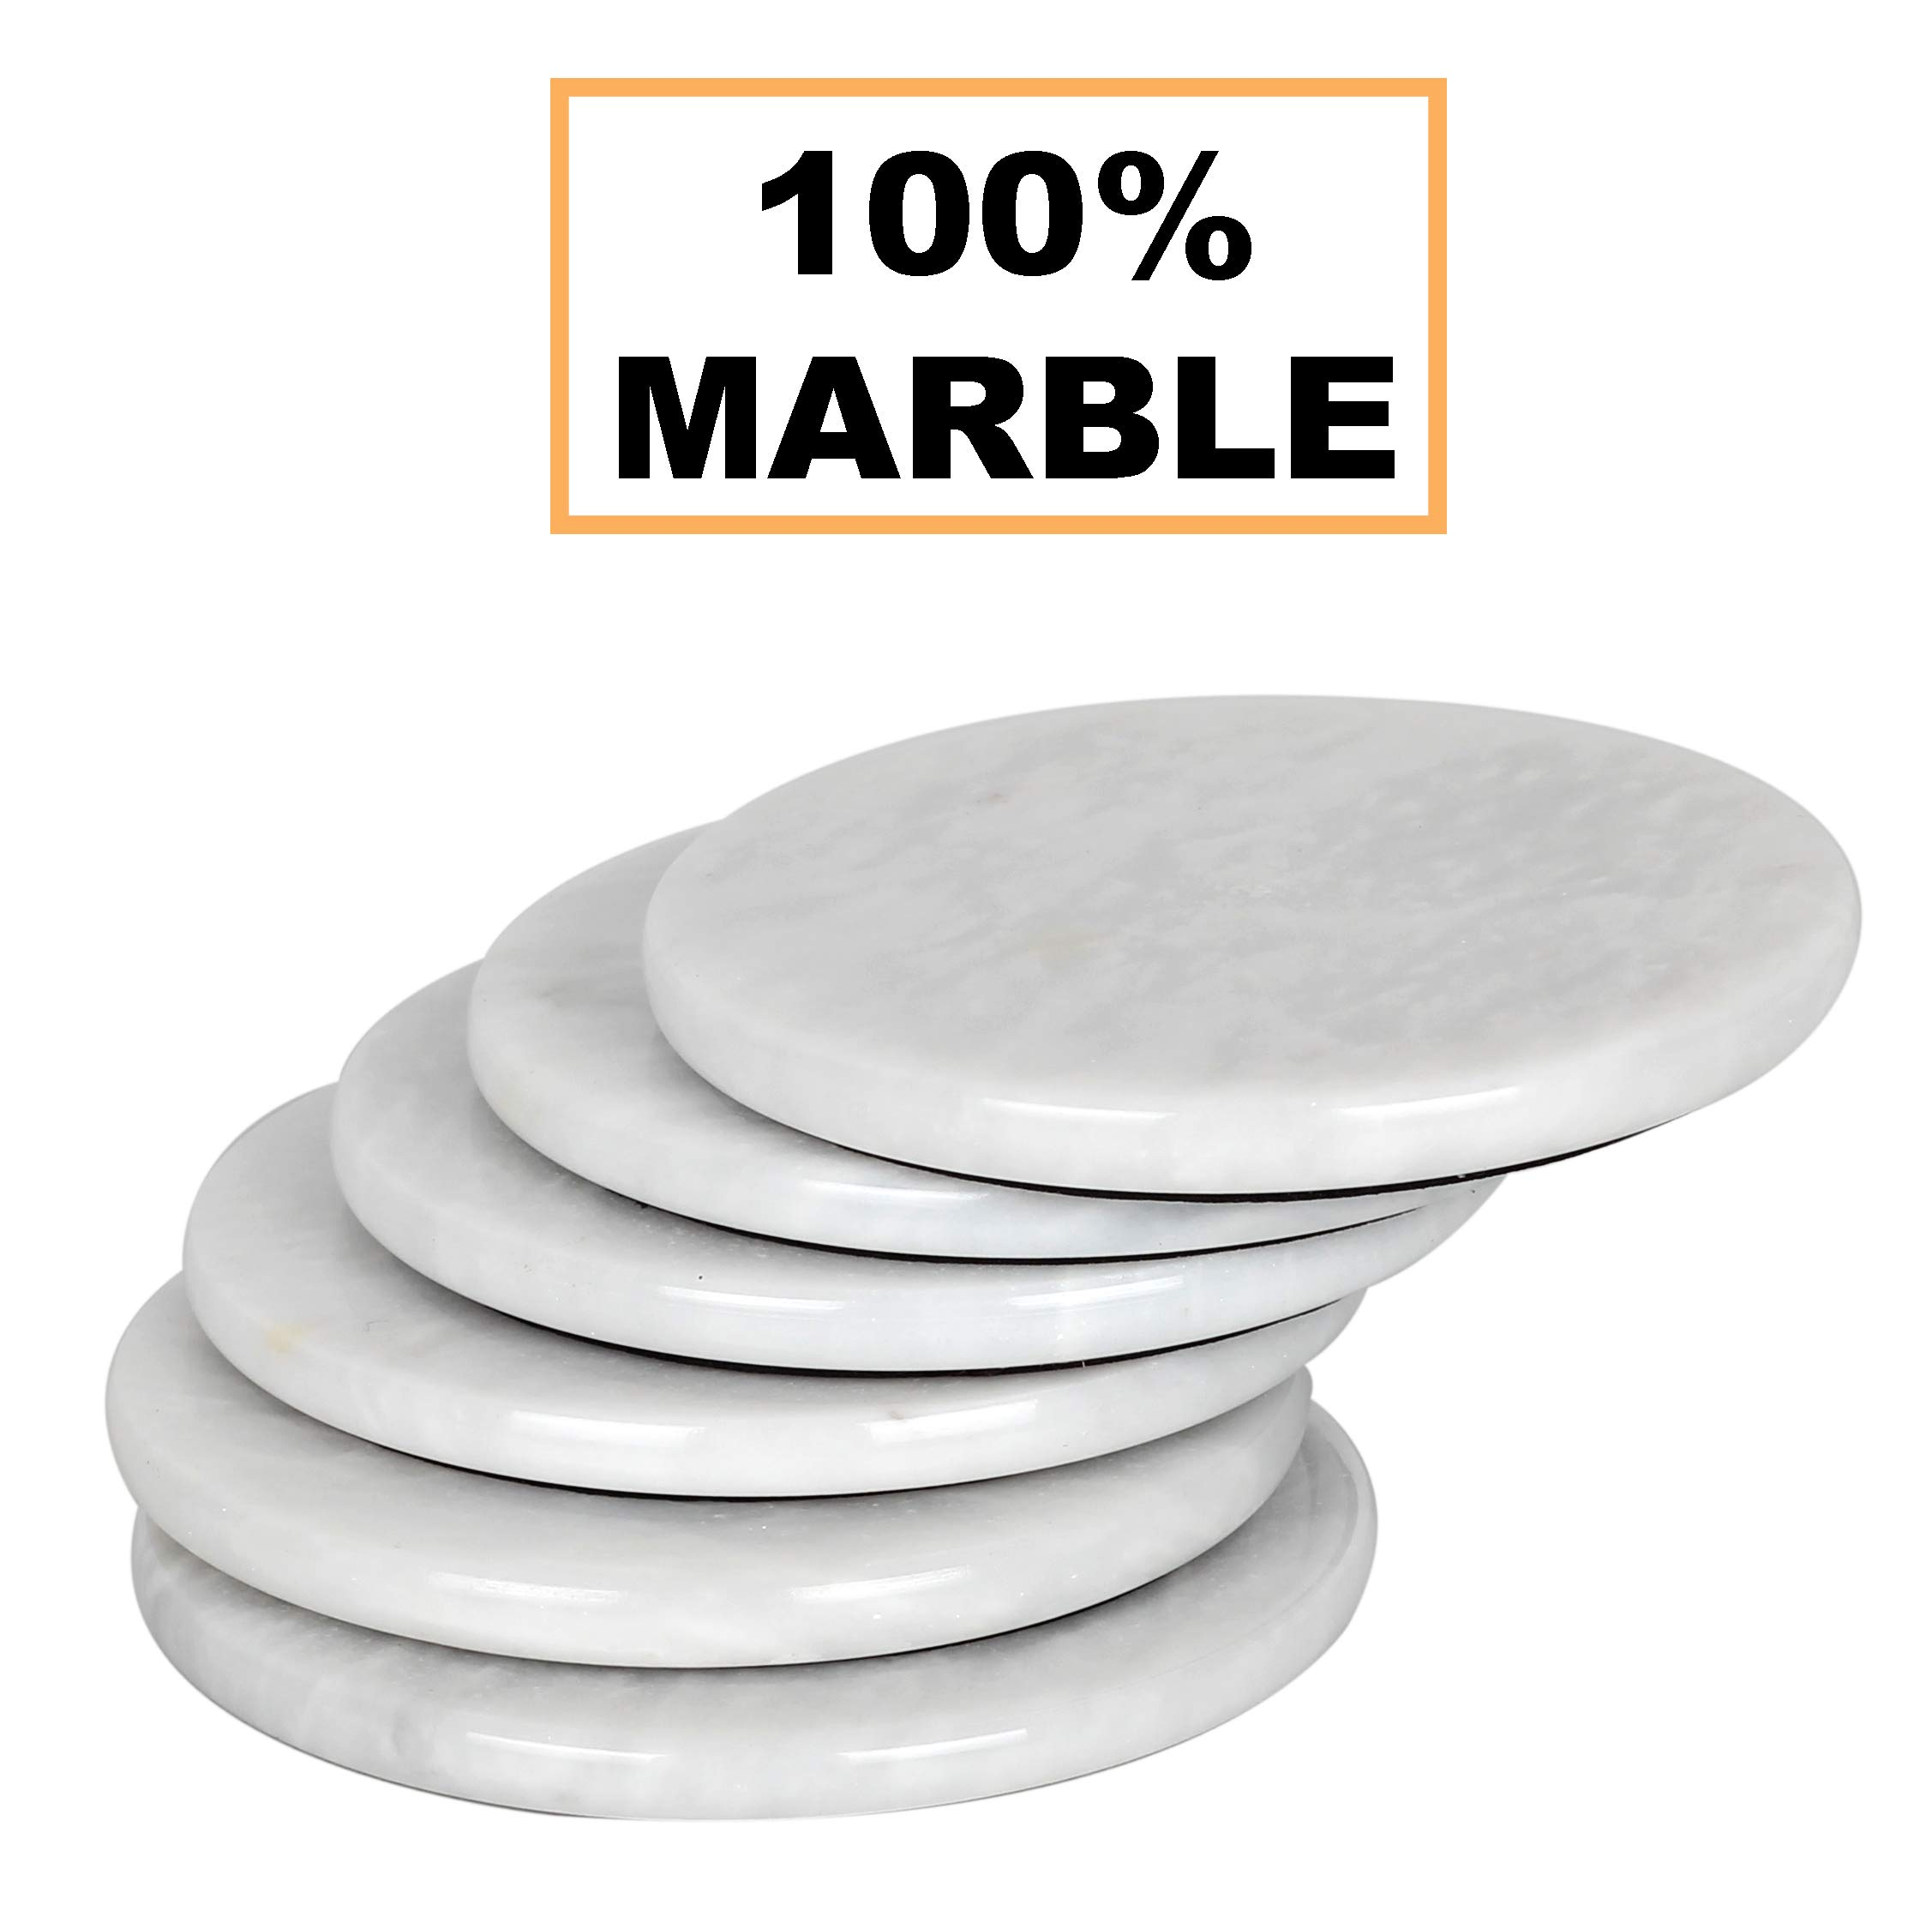 Coaster Set of 6 Handmade Marble Warming Coffee 3.5 Inches Round Coasters Set for Mug Glass Drinks - Non Plastic Non Tile - Ideal for Car and Outdoor Pot Mat Caddy Kitchen Cup Pad Coaster Sets (WHITE)